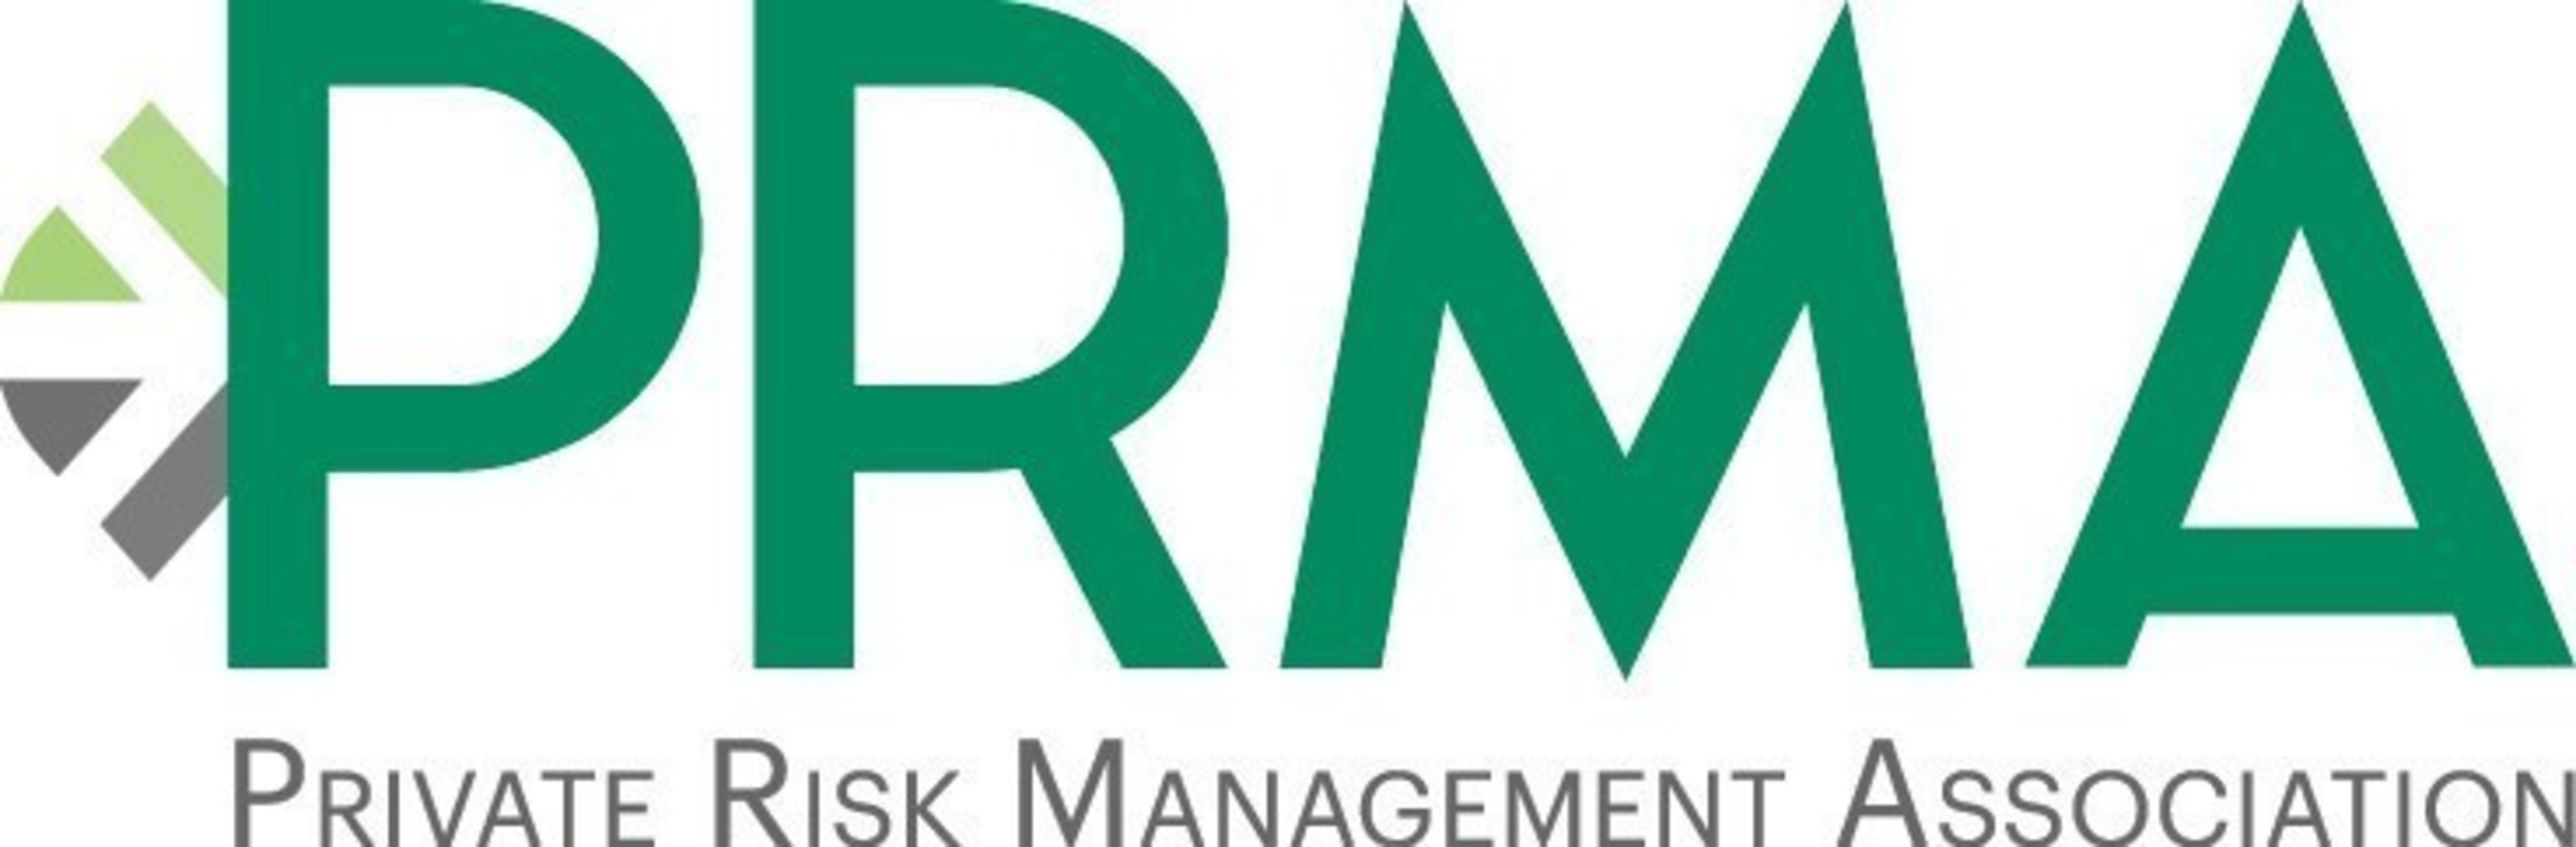 The Private Risk Management Association Bestows Sara Hamilton with Inaugural PRMA Industry Leader